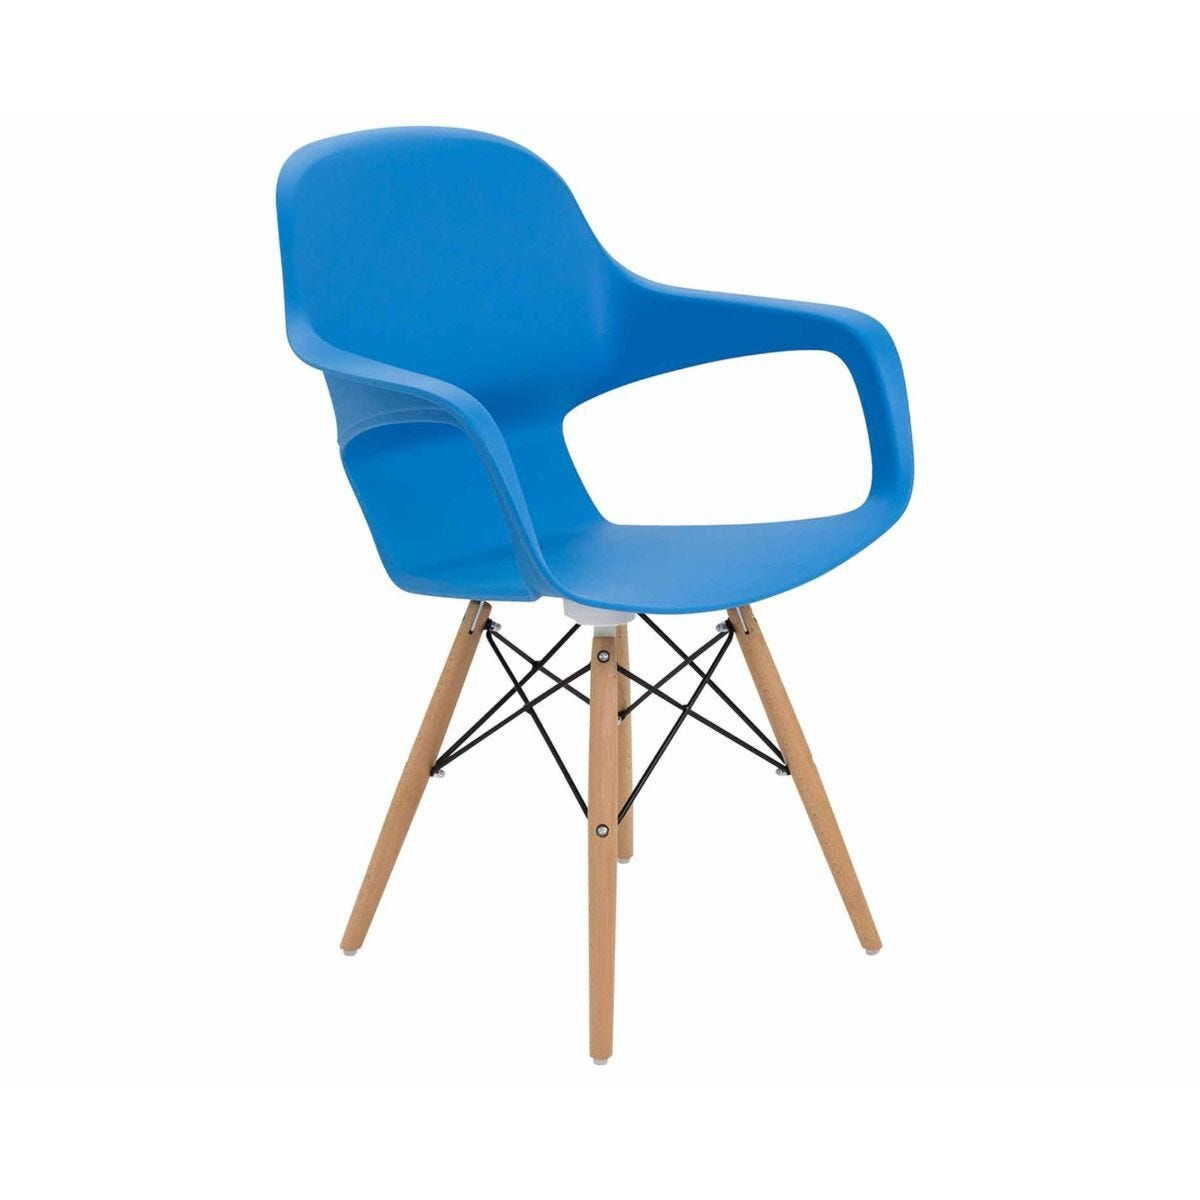 TC Office Ariel 2 Retro Chair with Wooden and Wire Base Blue